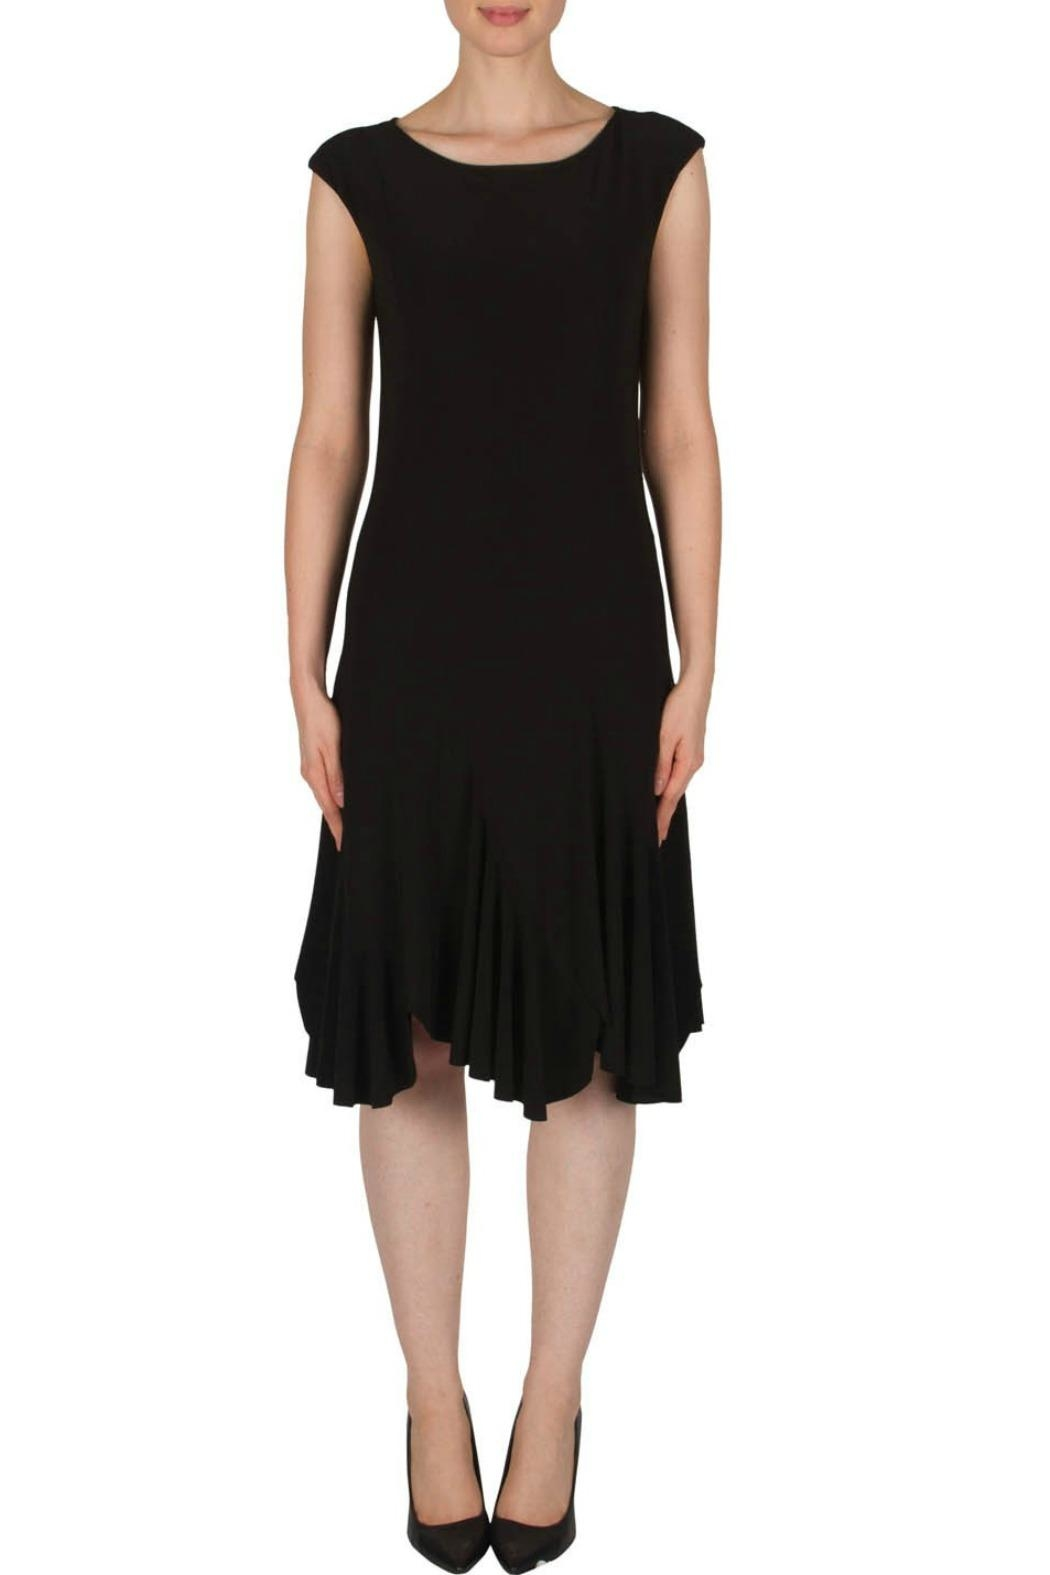 Joseph Ribkoff Black Cap Dress - Front Cropped Image